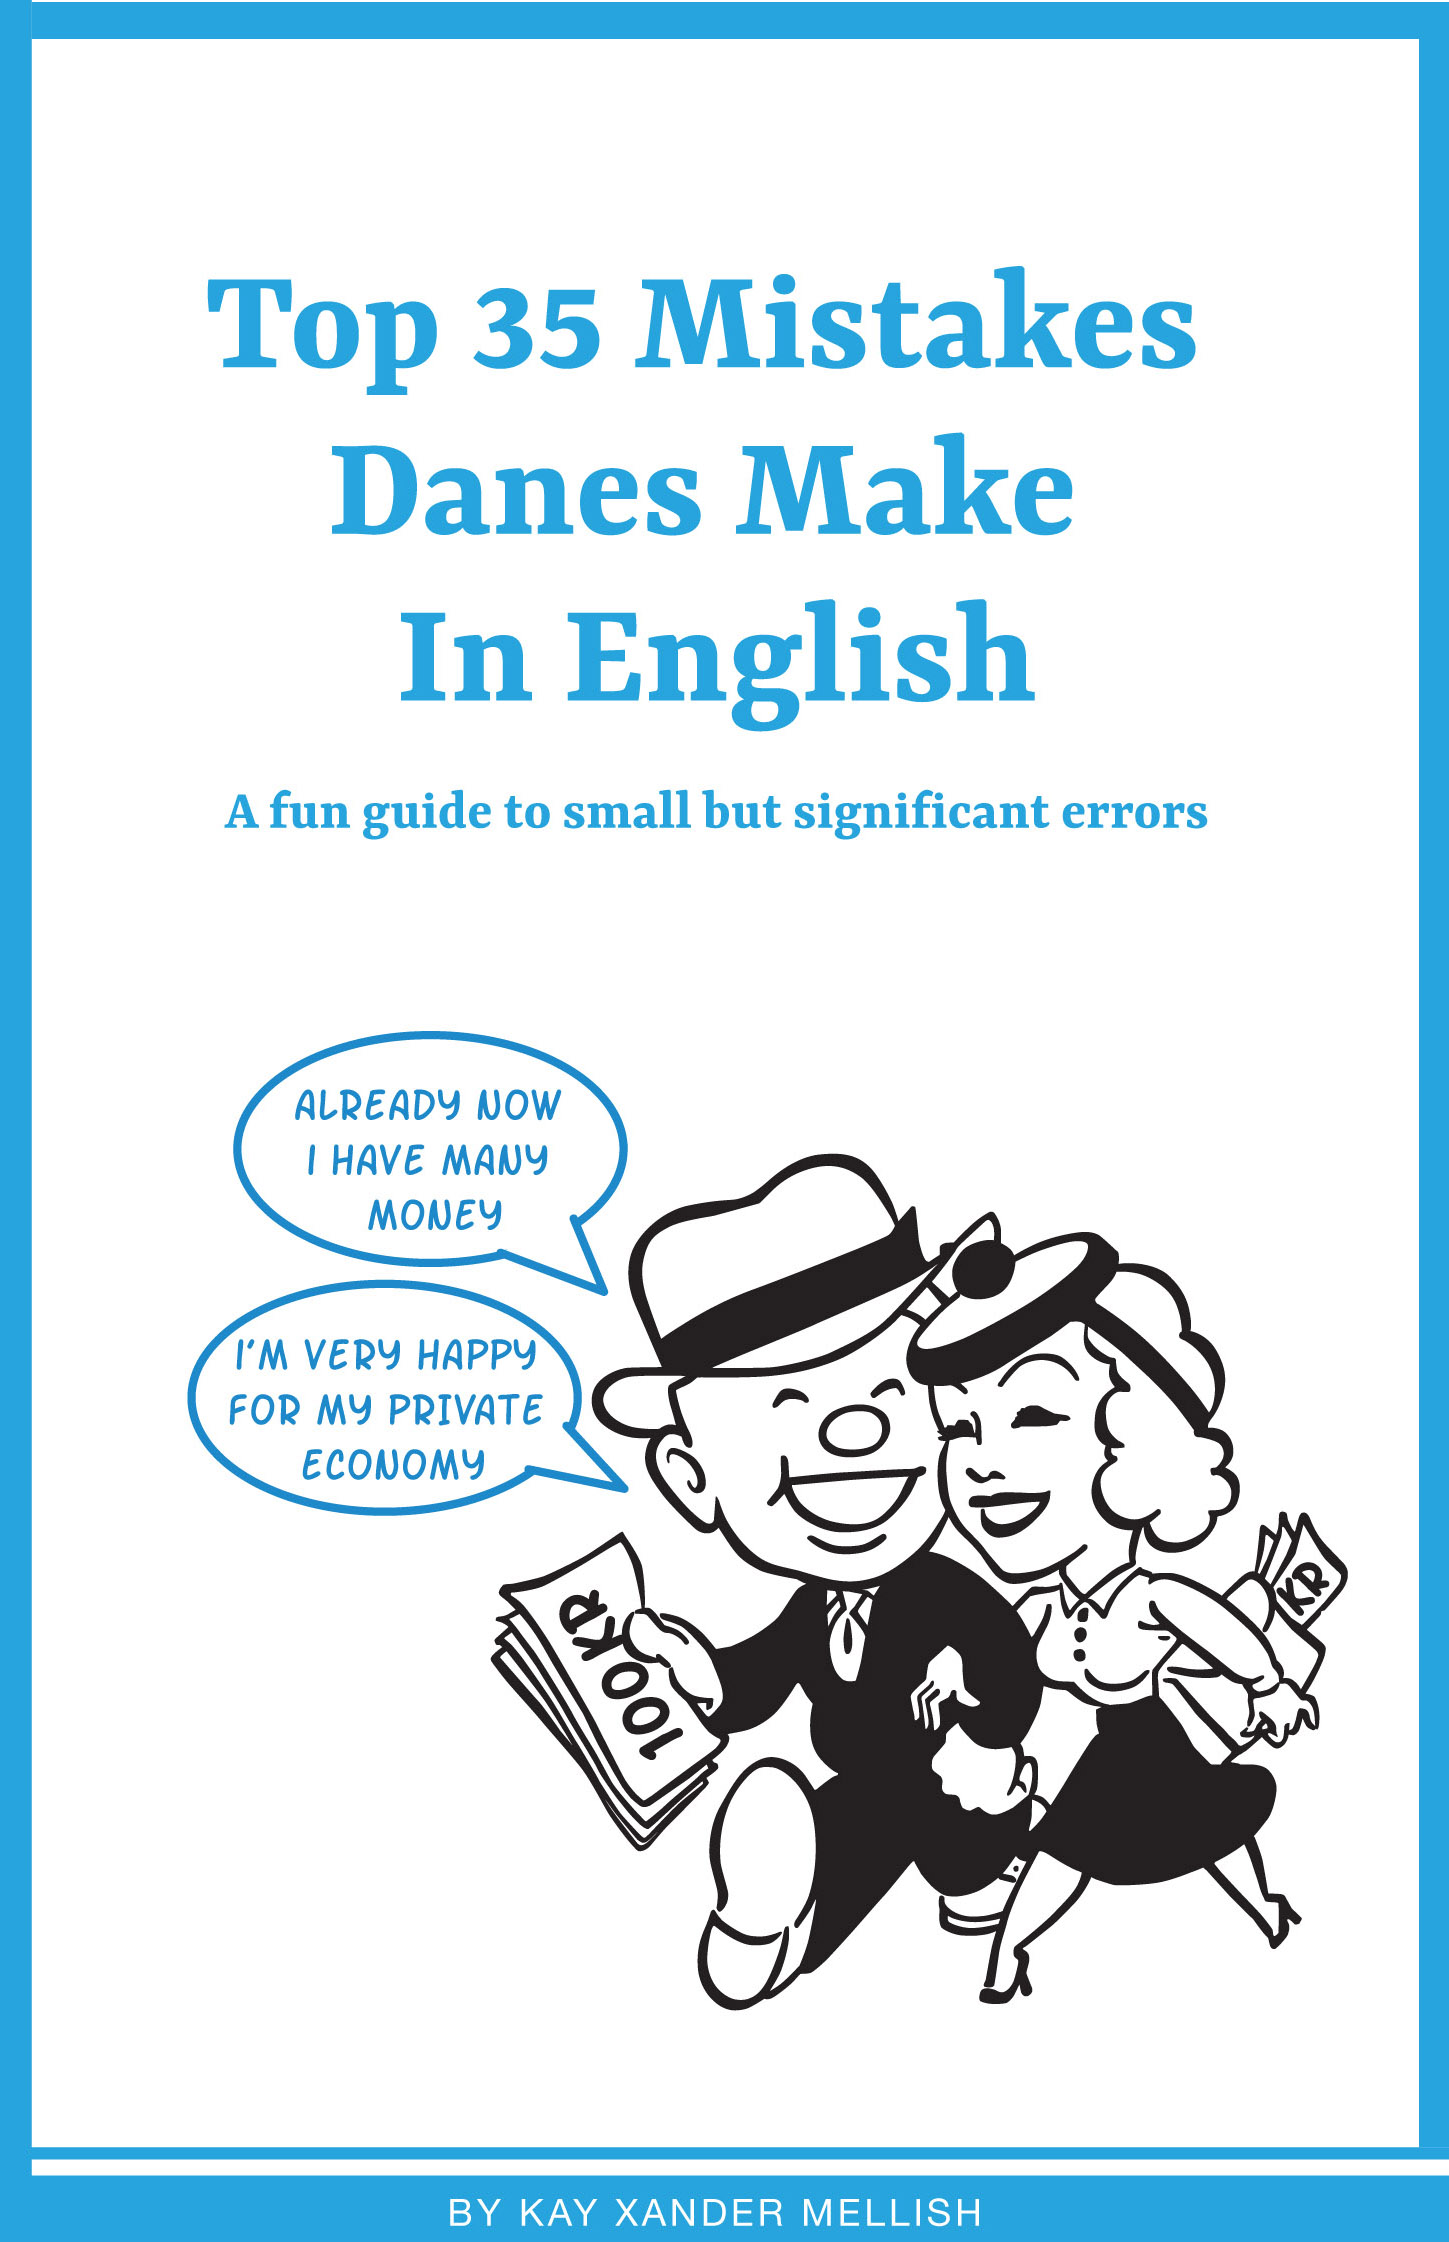 Top_35_Mistakes_Danes_Make_in_English_book_cover.jpg